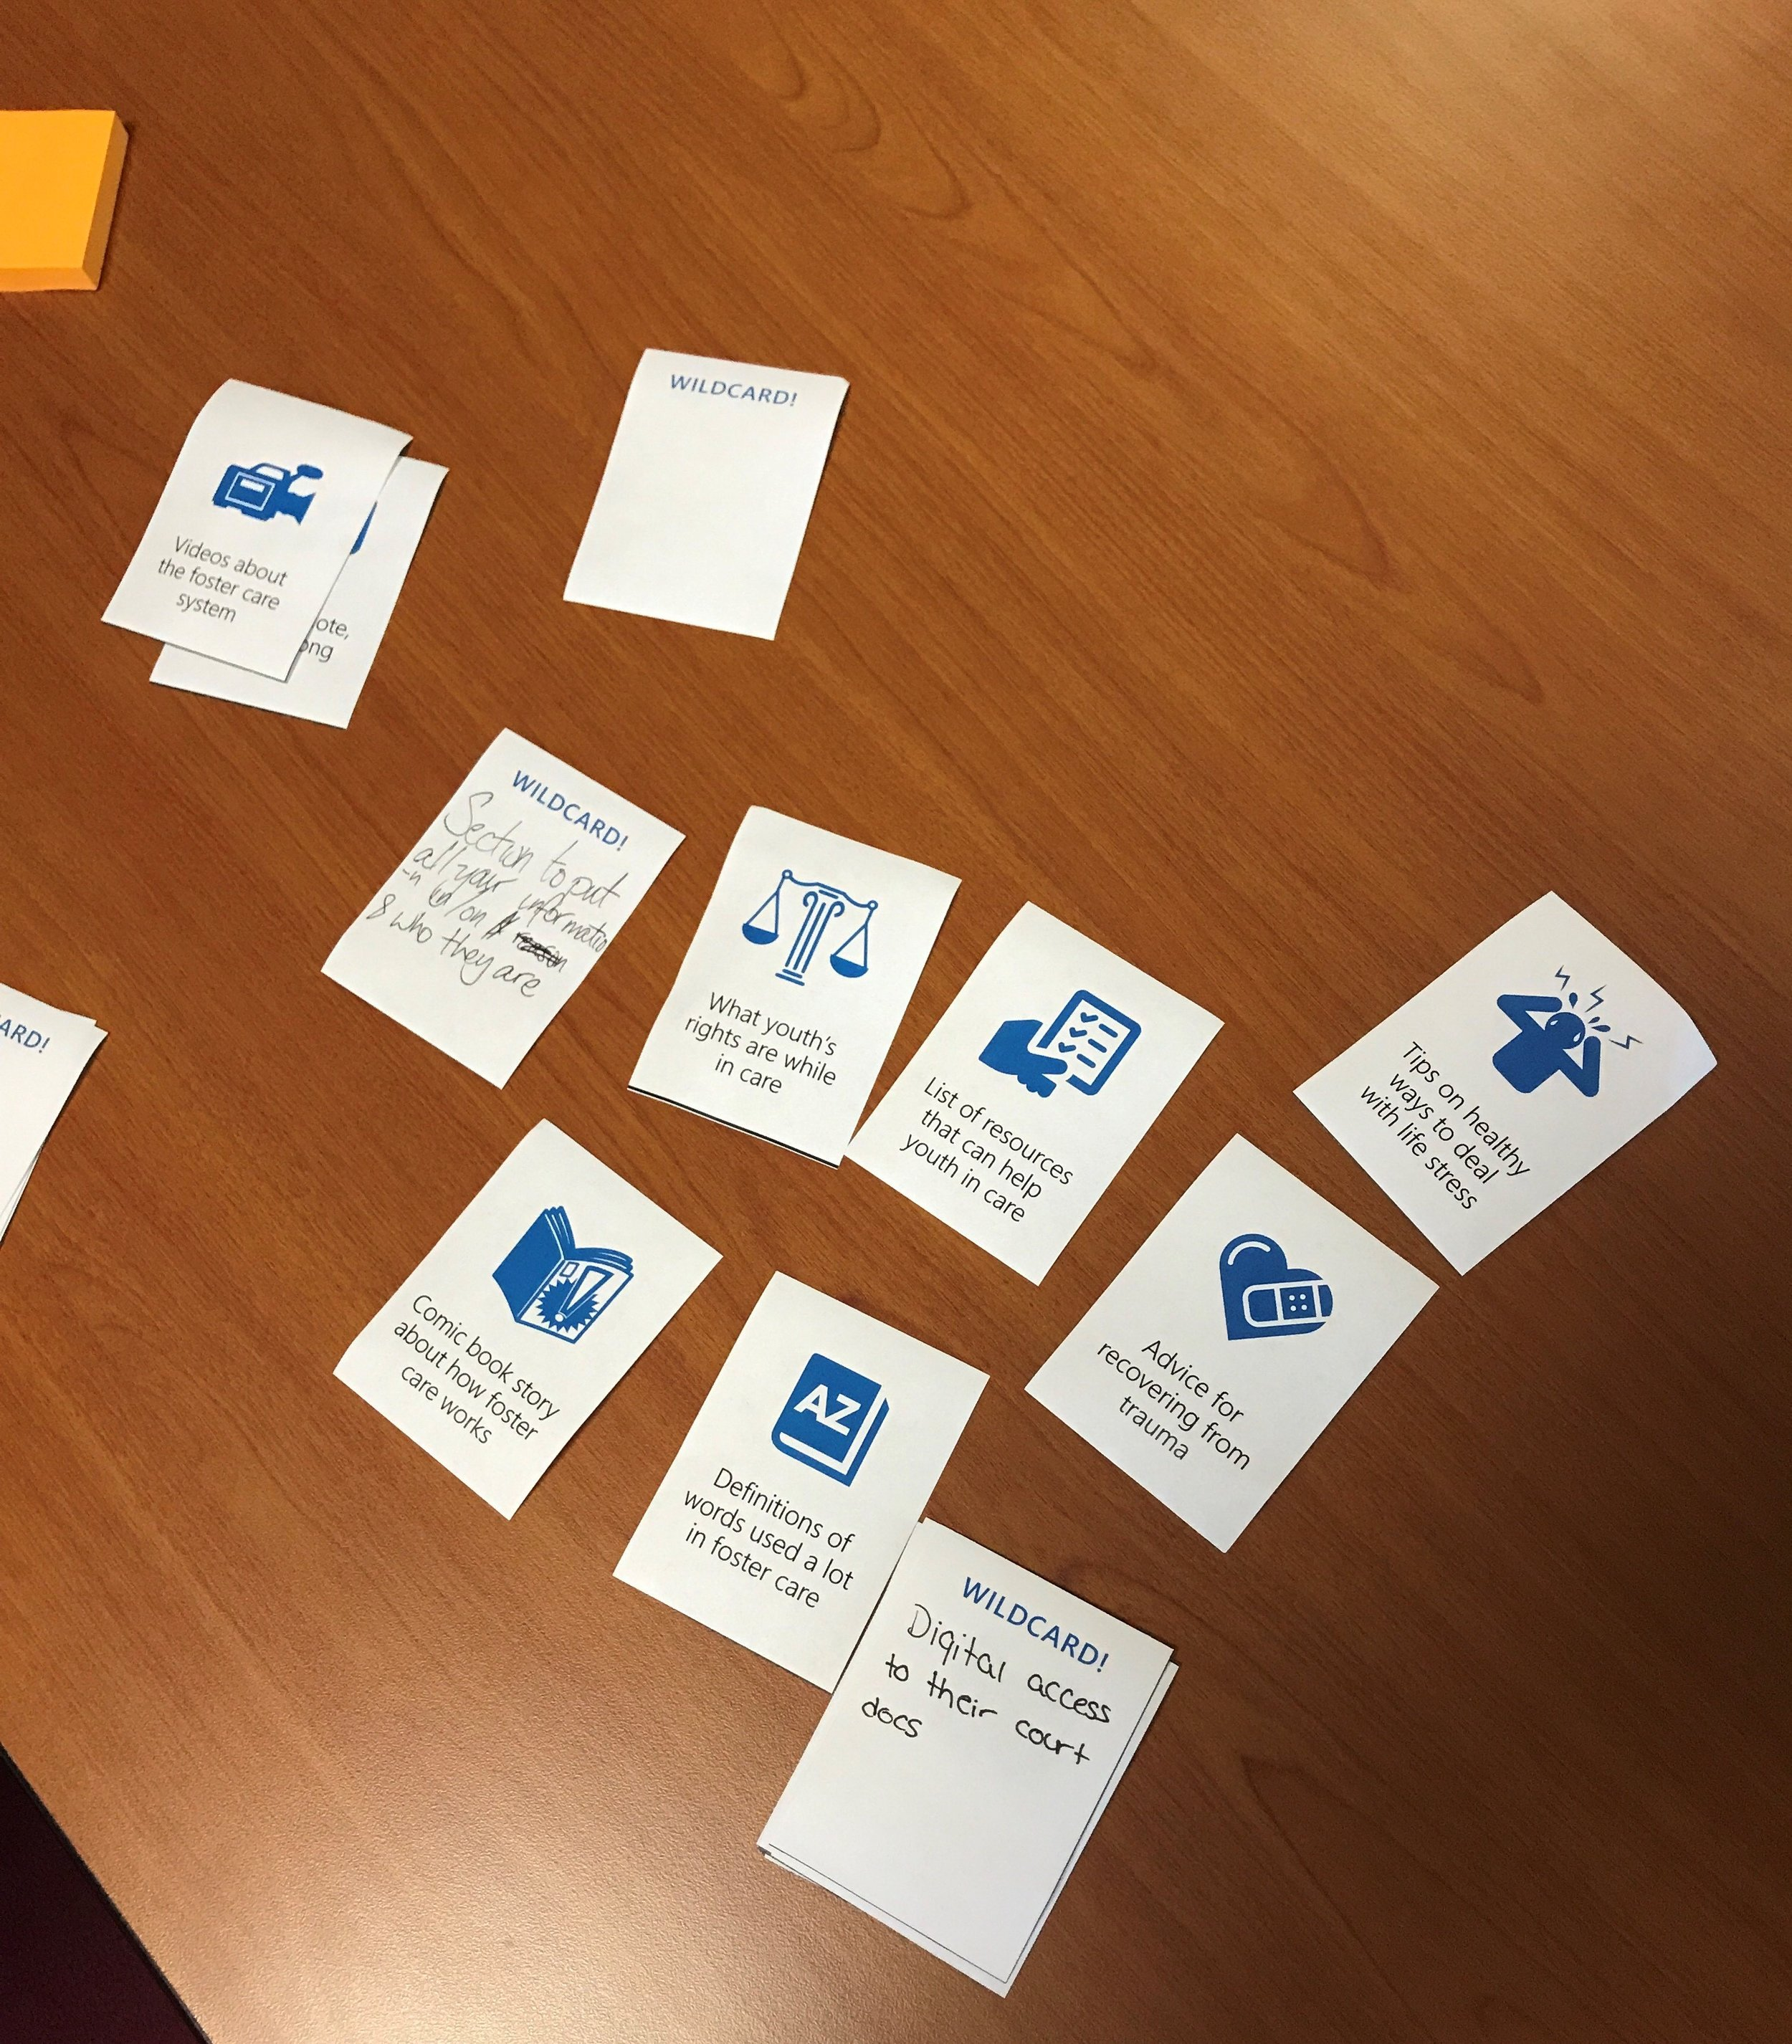 We started by hosting conversations with youth about this project and asked them what was important to let youth know about. After that, we did a card sorting exercise to help identify critical content to include. Next, we had them vote on content with candy.